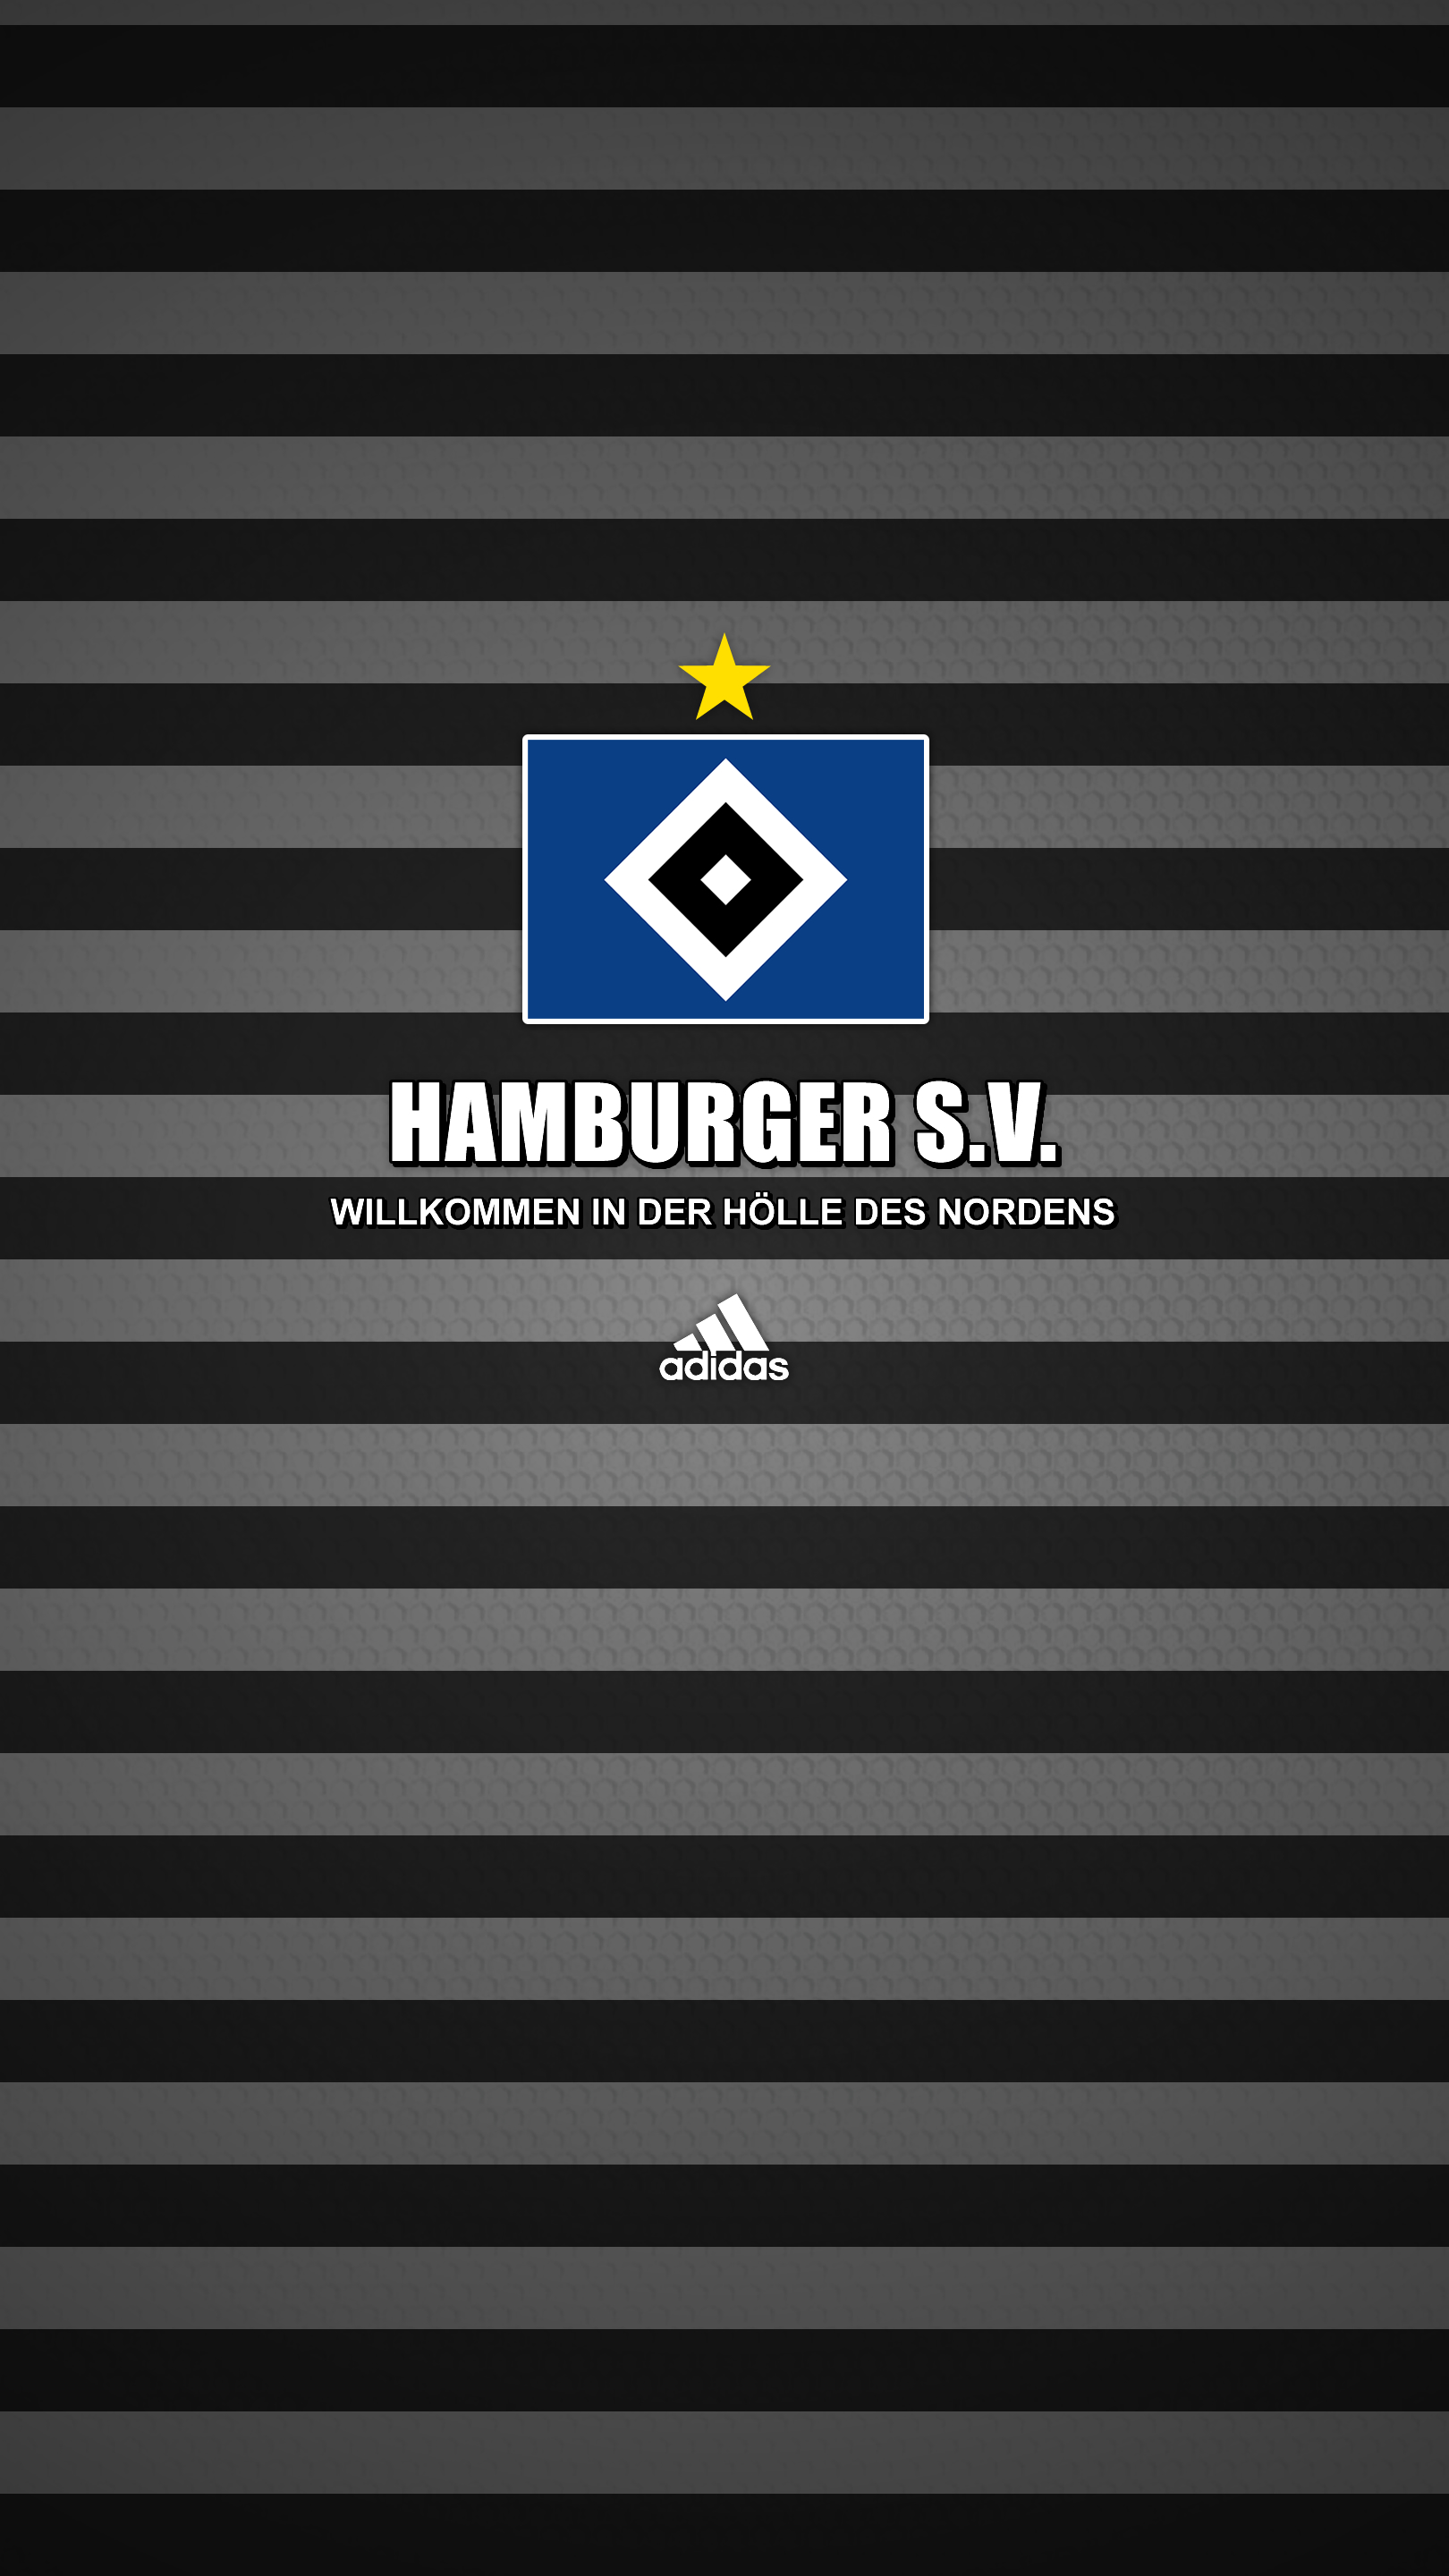 Hamburg 1887 wallpaper, Football Pictures and Photos | BL ...